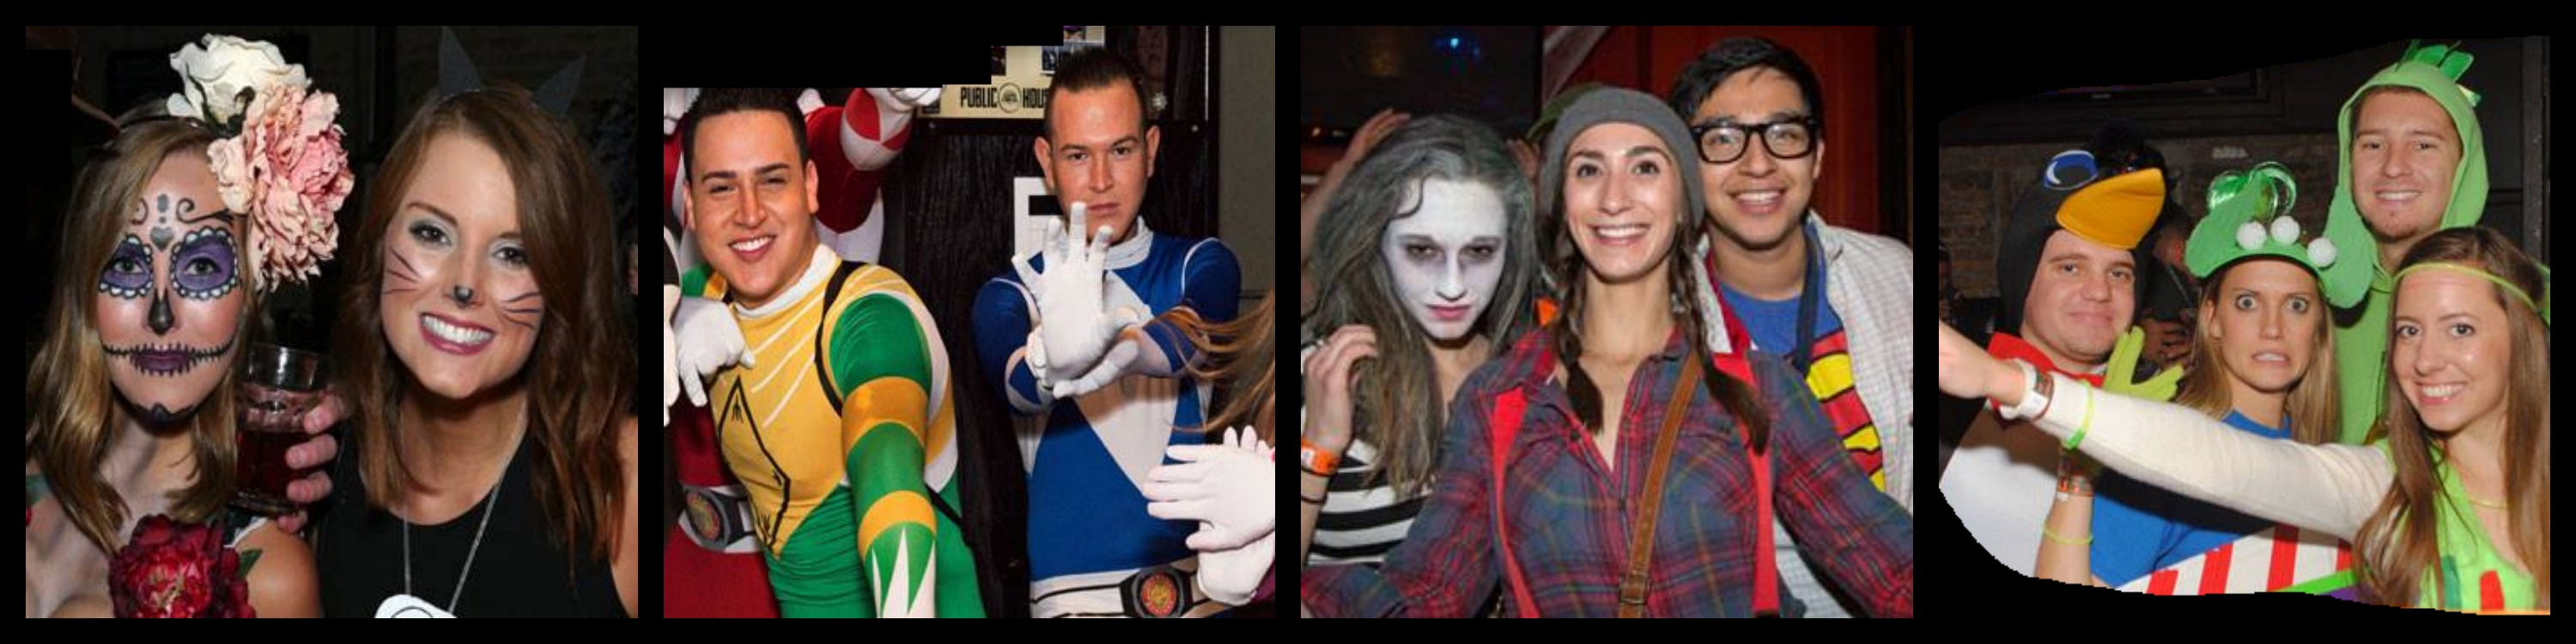 River North Halloween Crawl 2016 Tickets, Sat, Oct 29, 2016 at 8 ...